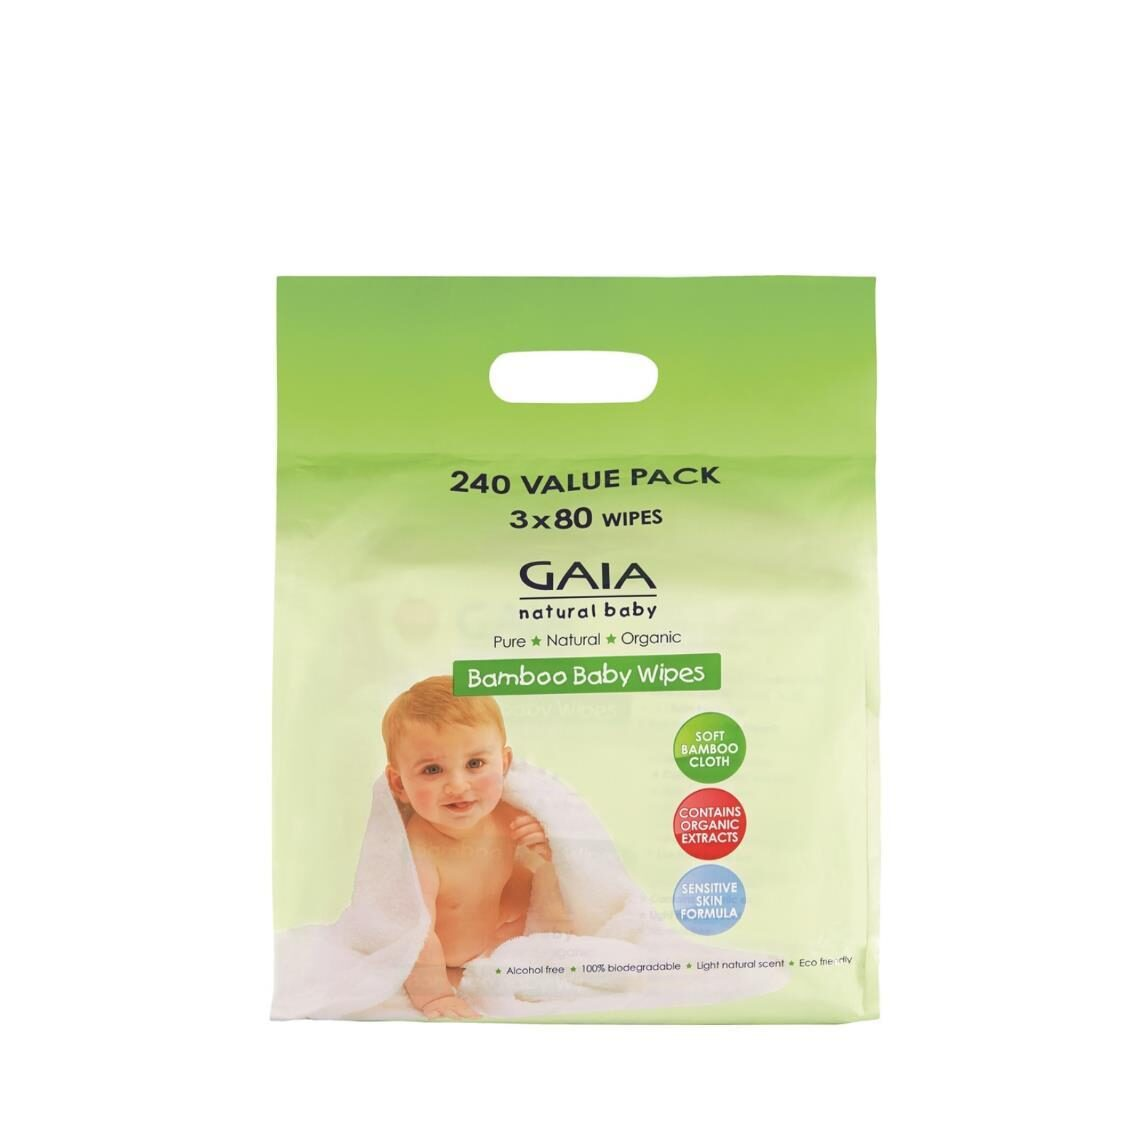 GAIA Bamboo Baby Wipes 240s